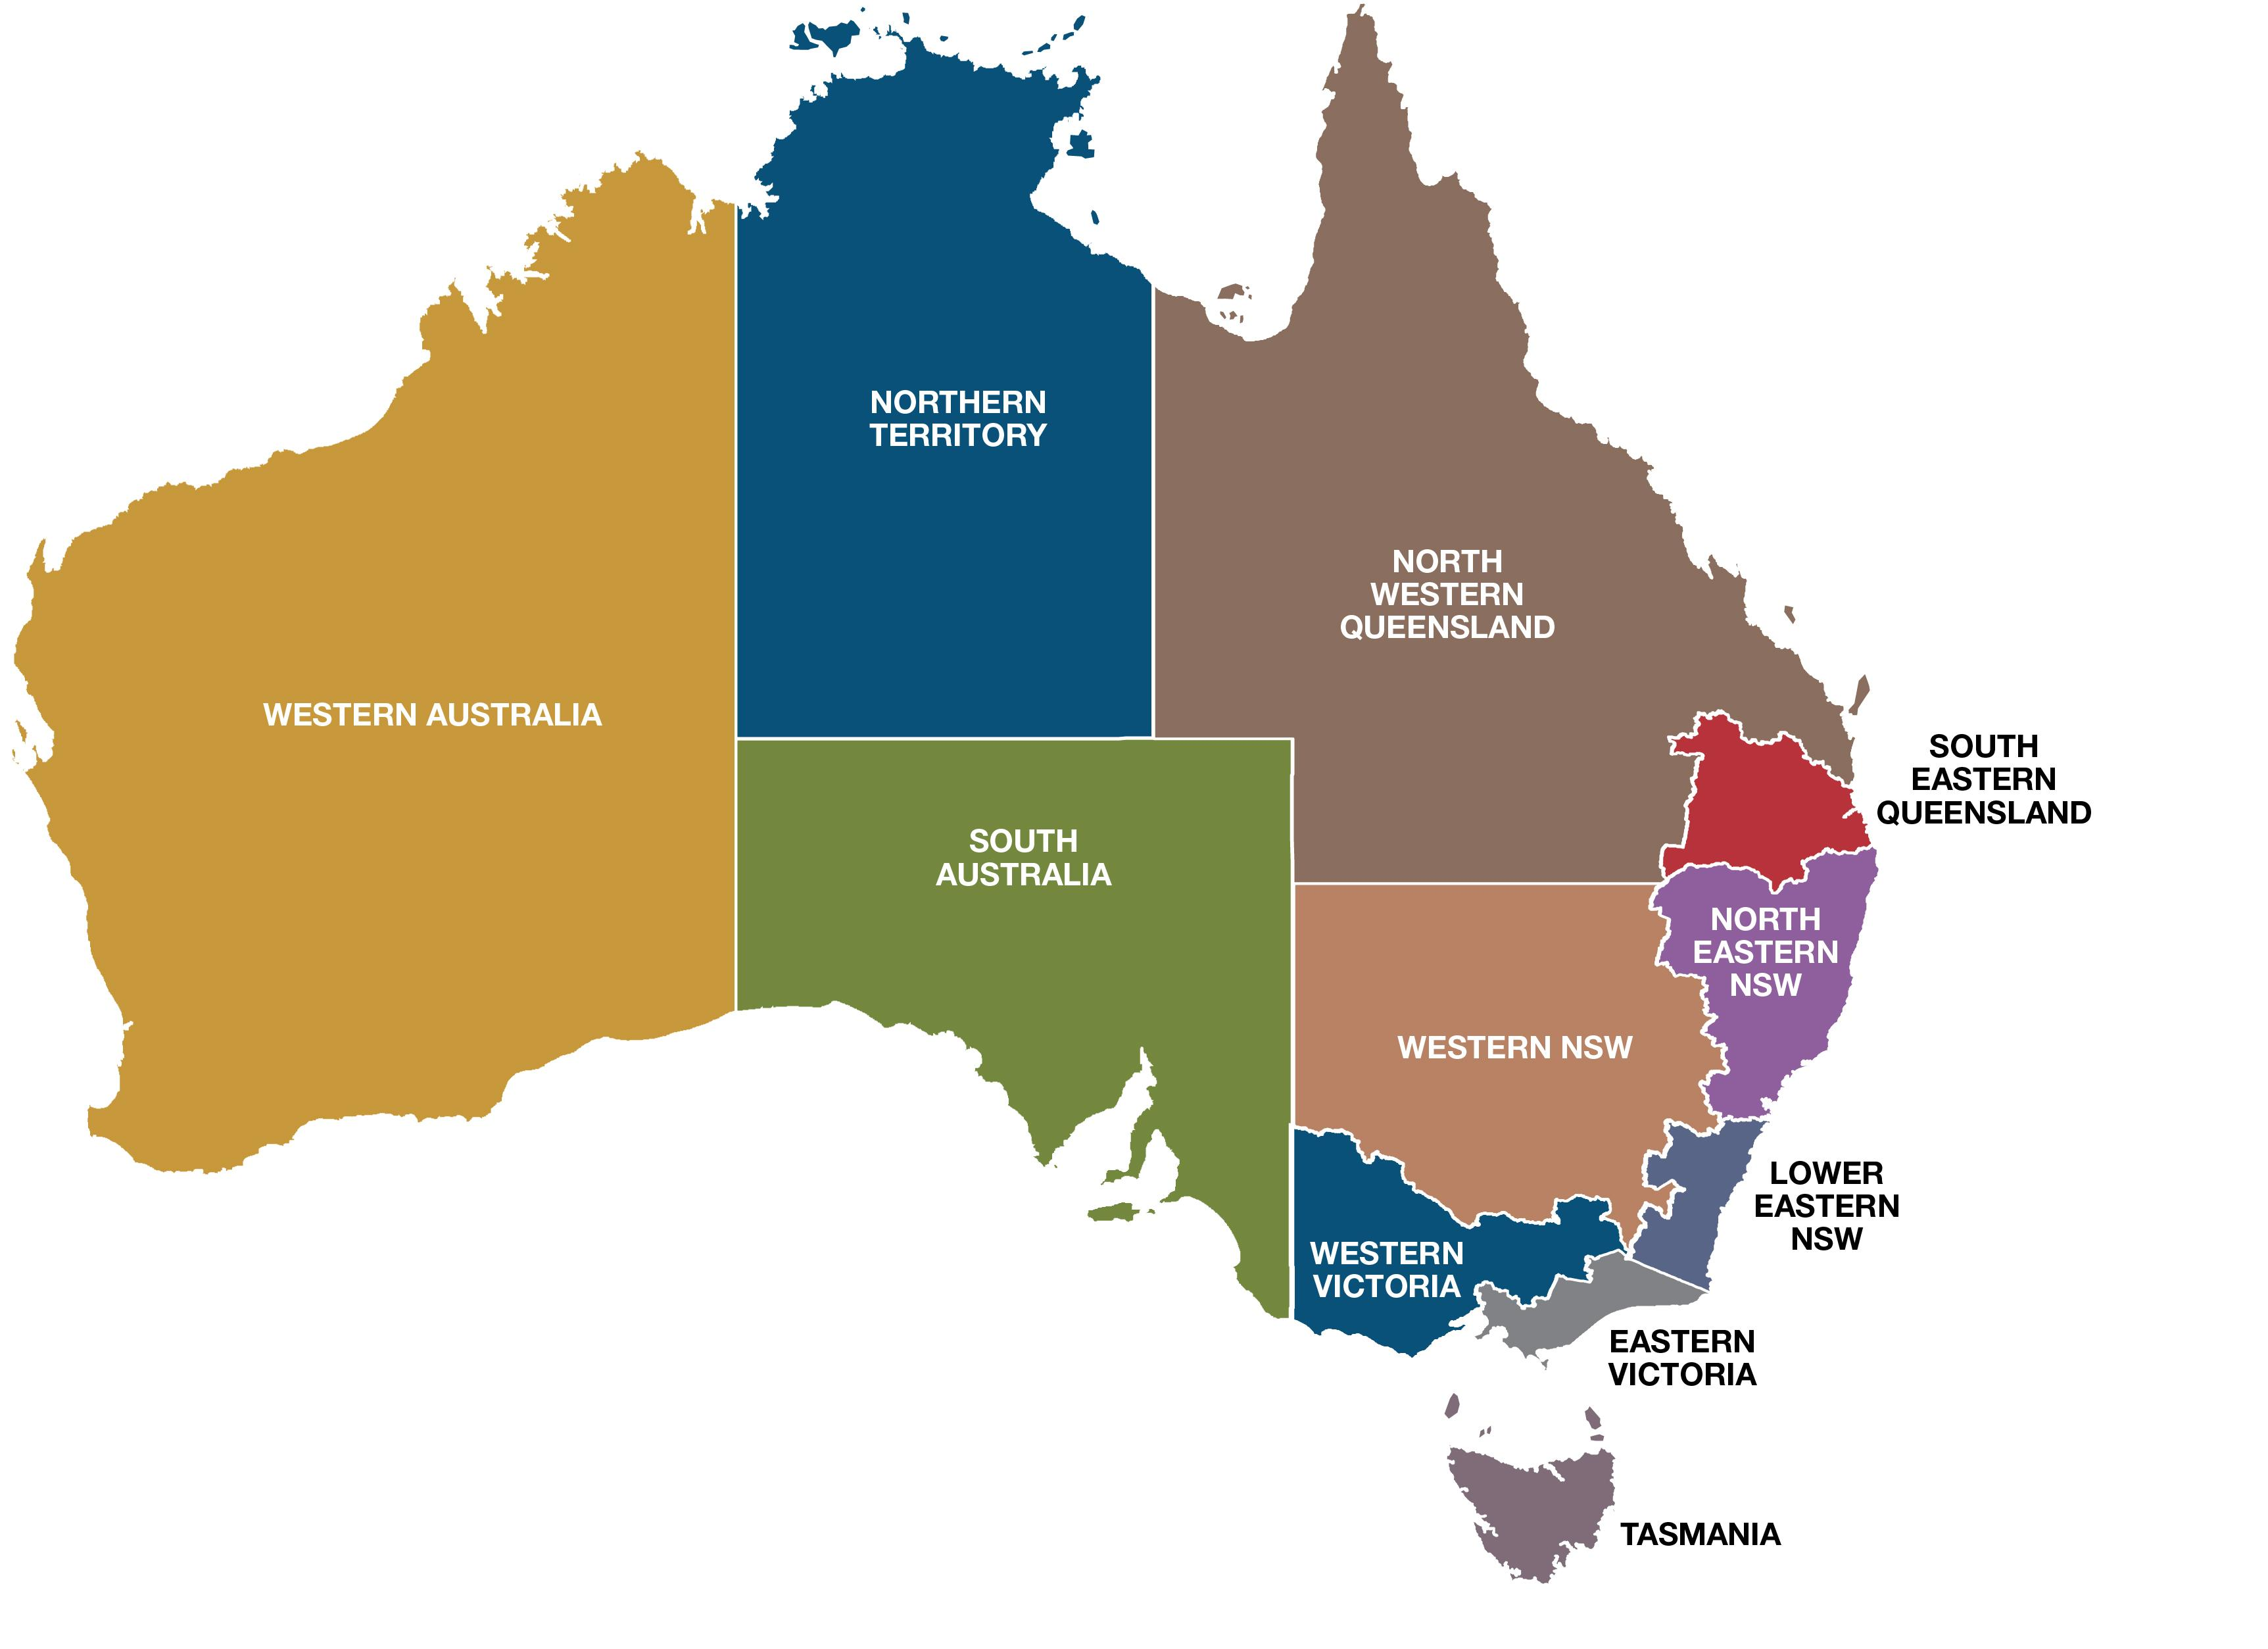 Map Of Australia New Zealand And Tasmania.Australia Regions Map Map Of Australia Regions Australia And New